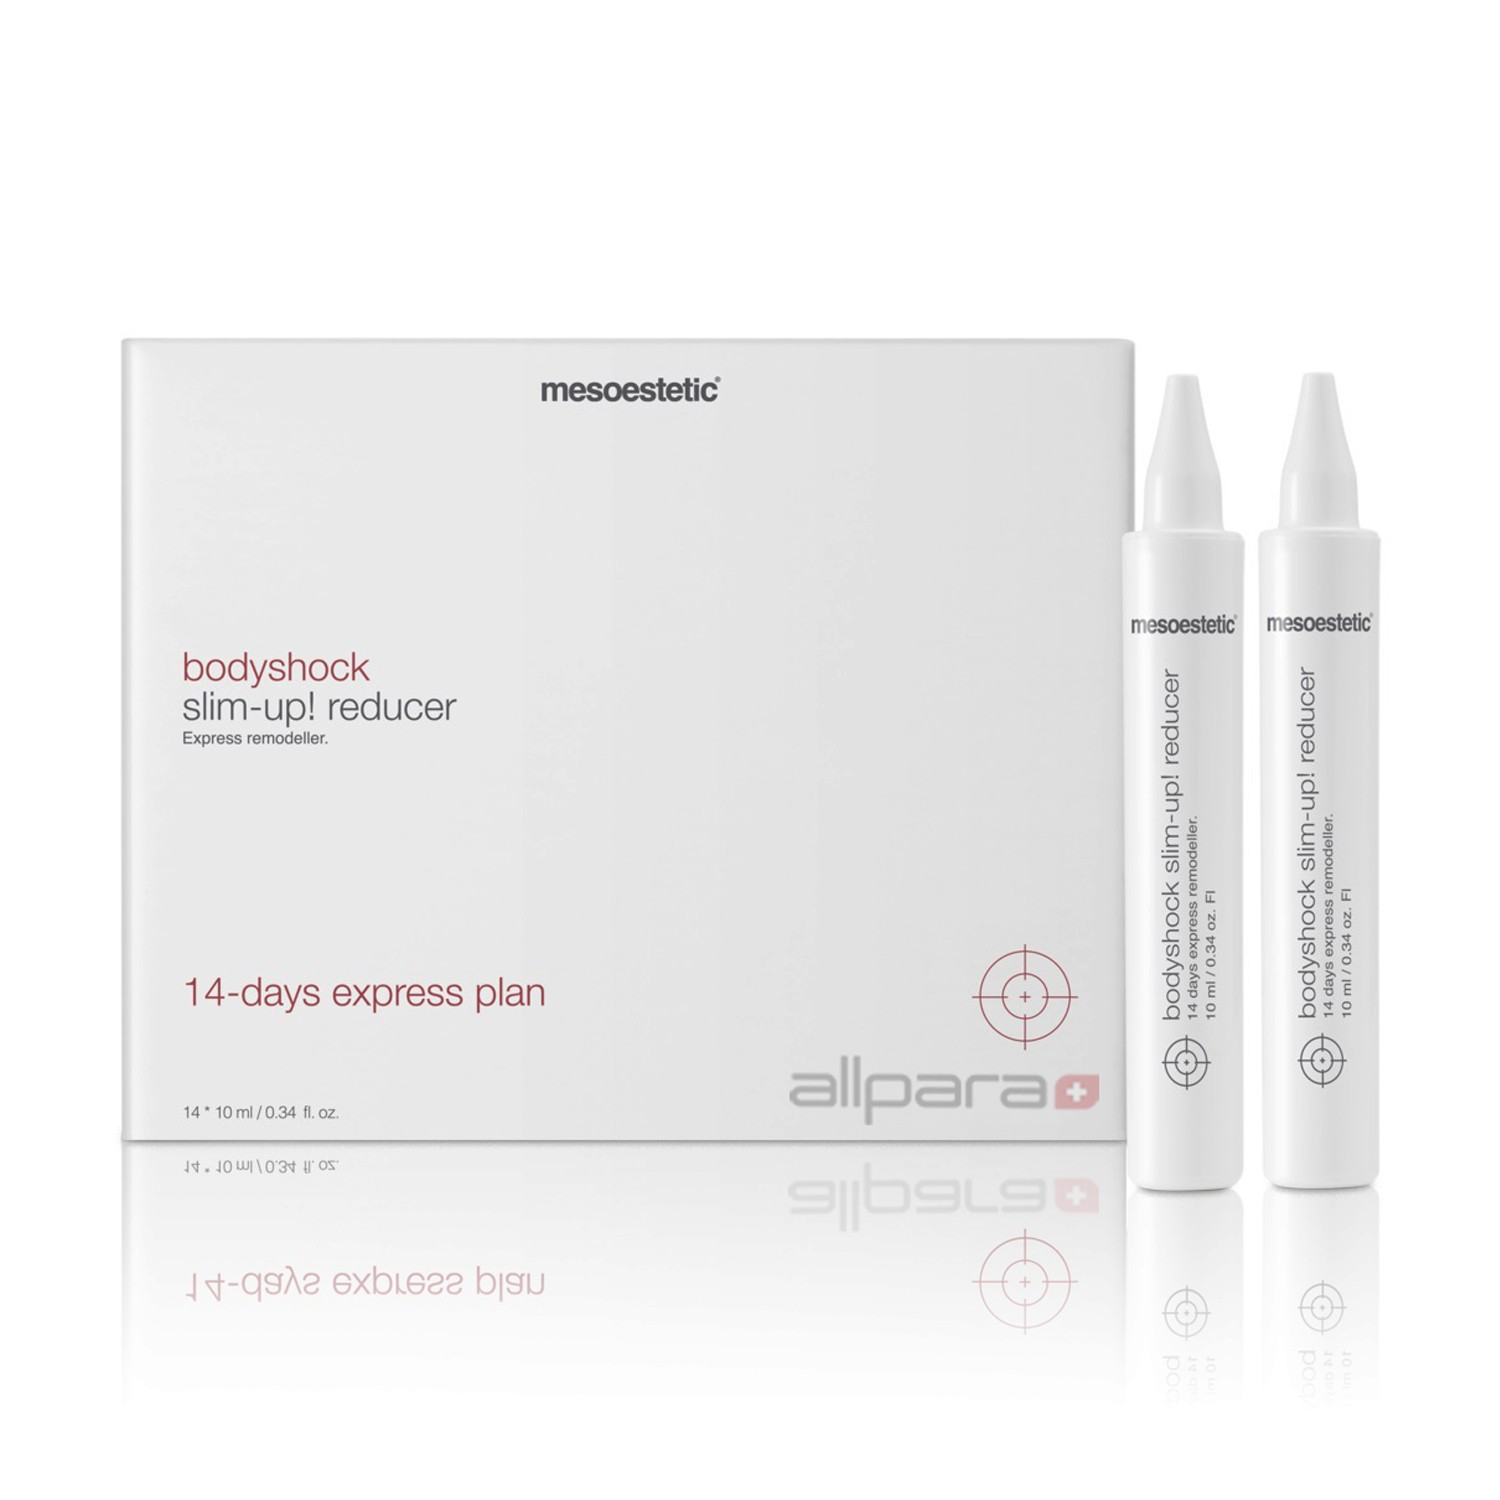 Mesoestetic-Bodyshock-Slim-up-Reducer